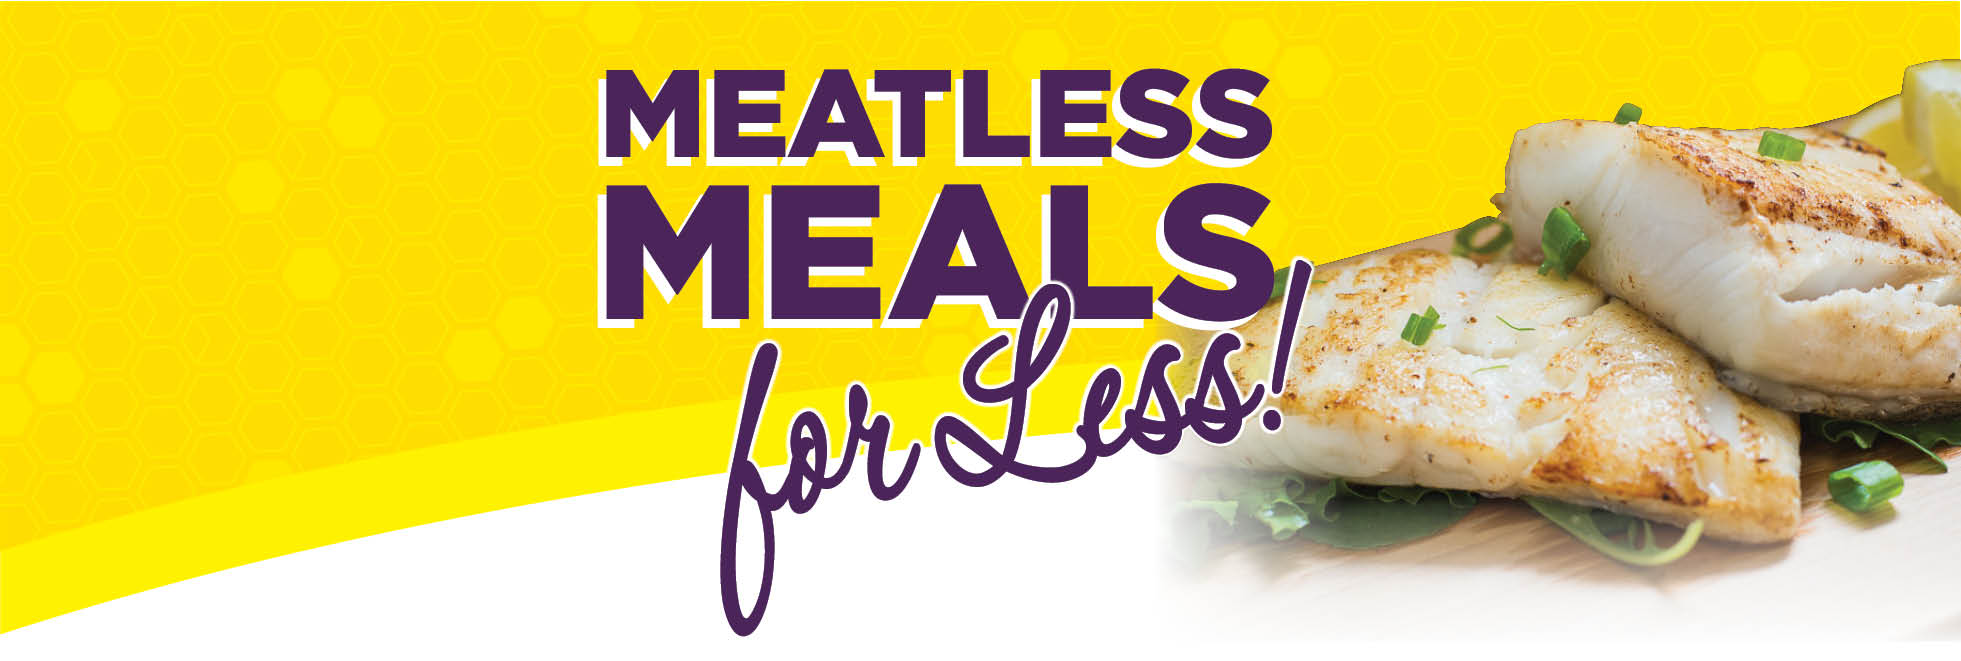 Meatless Meals For Less